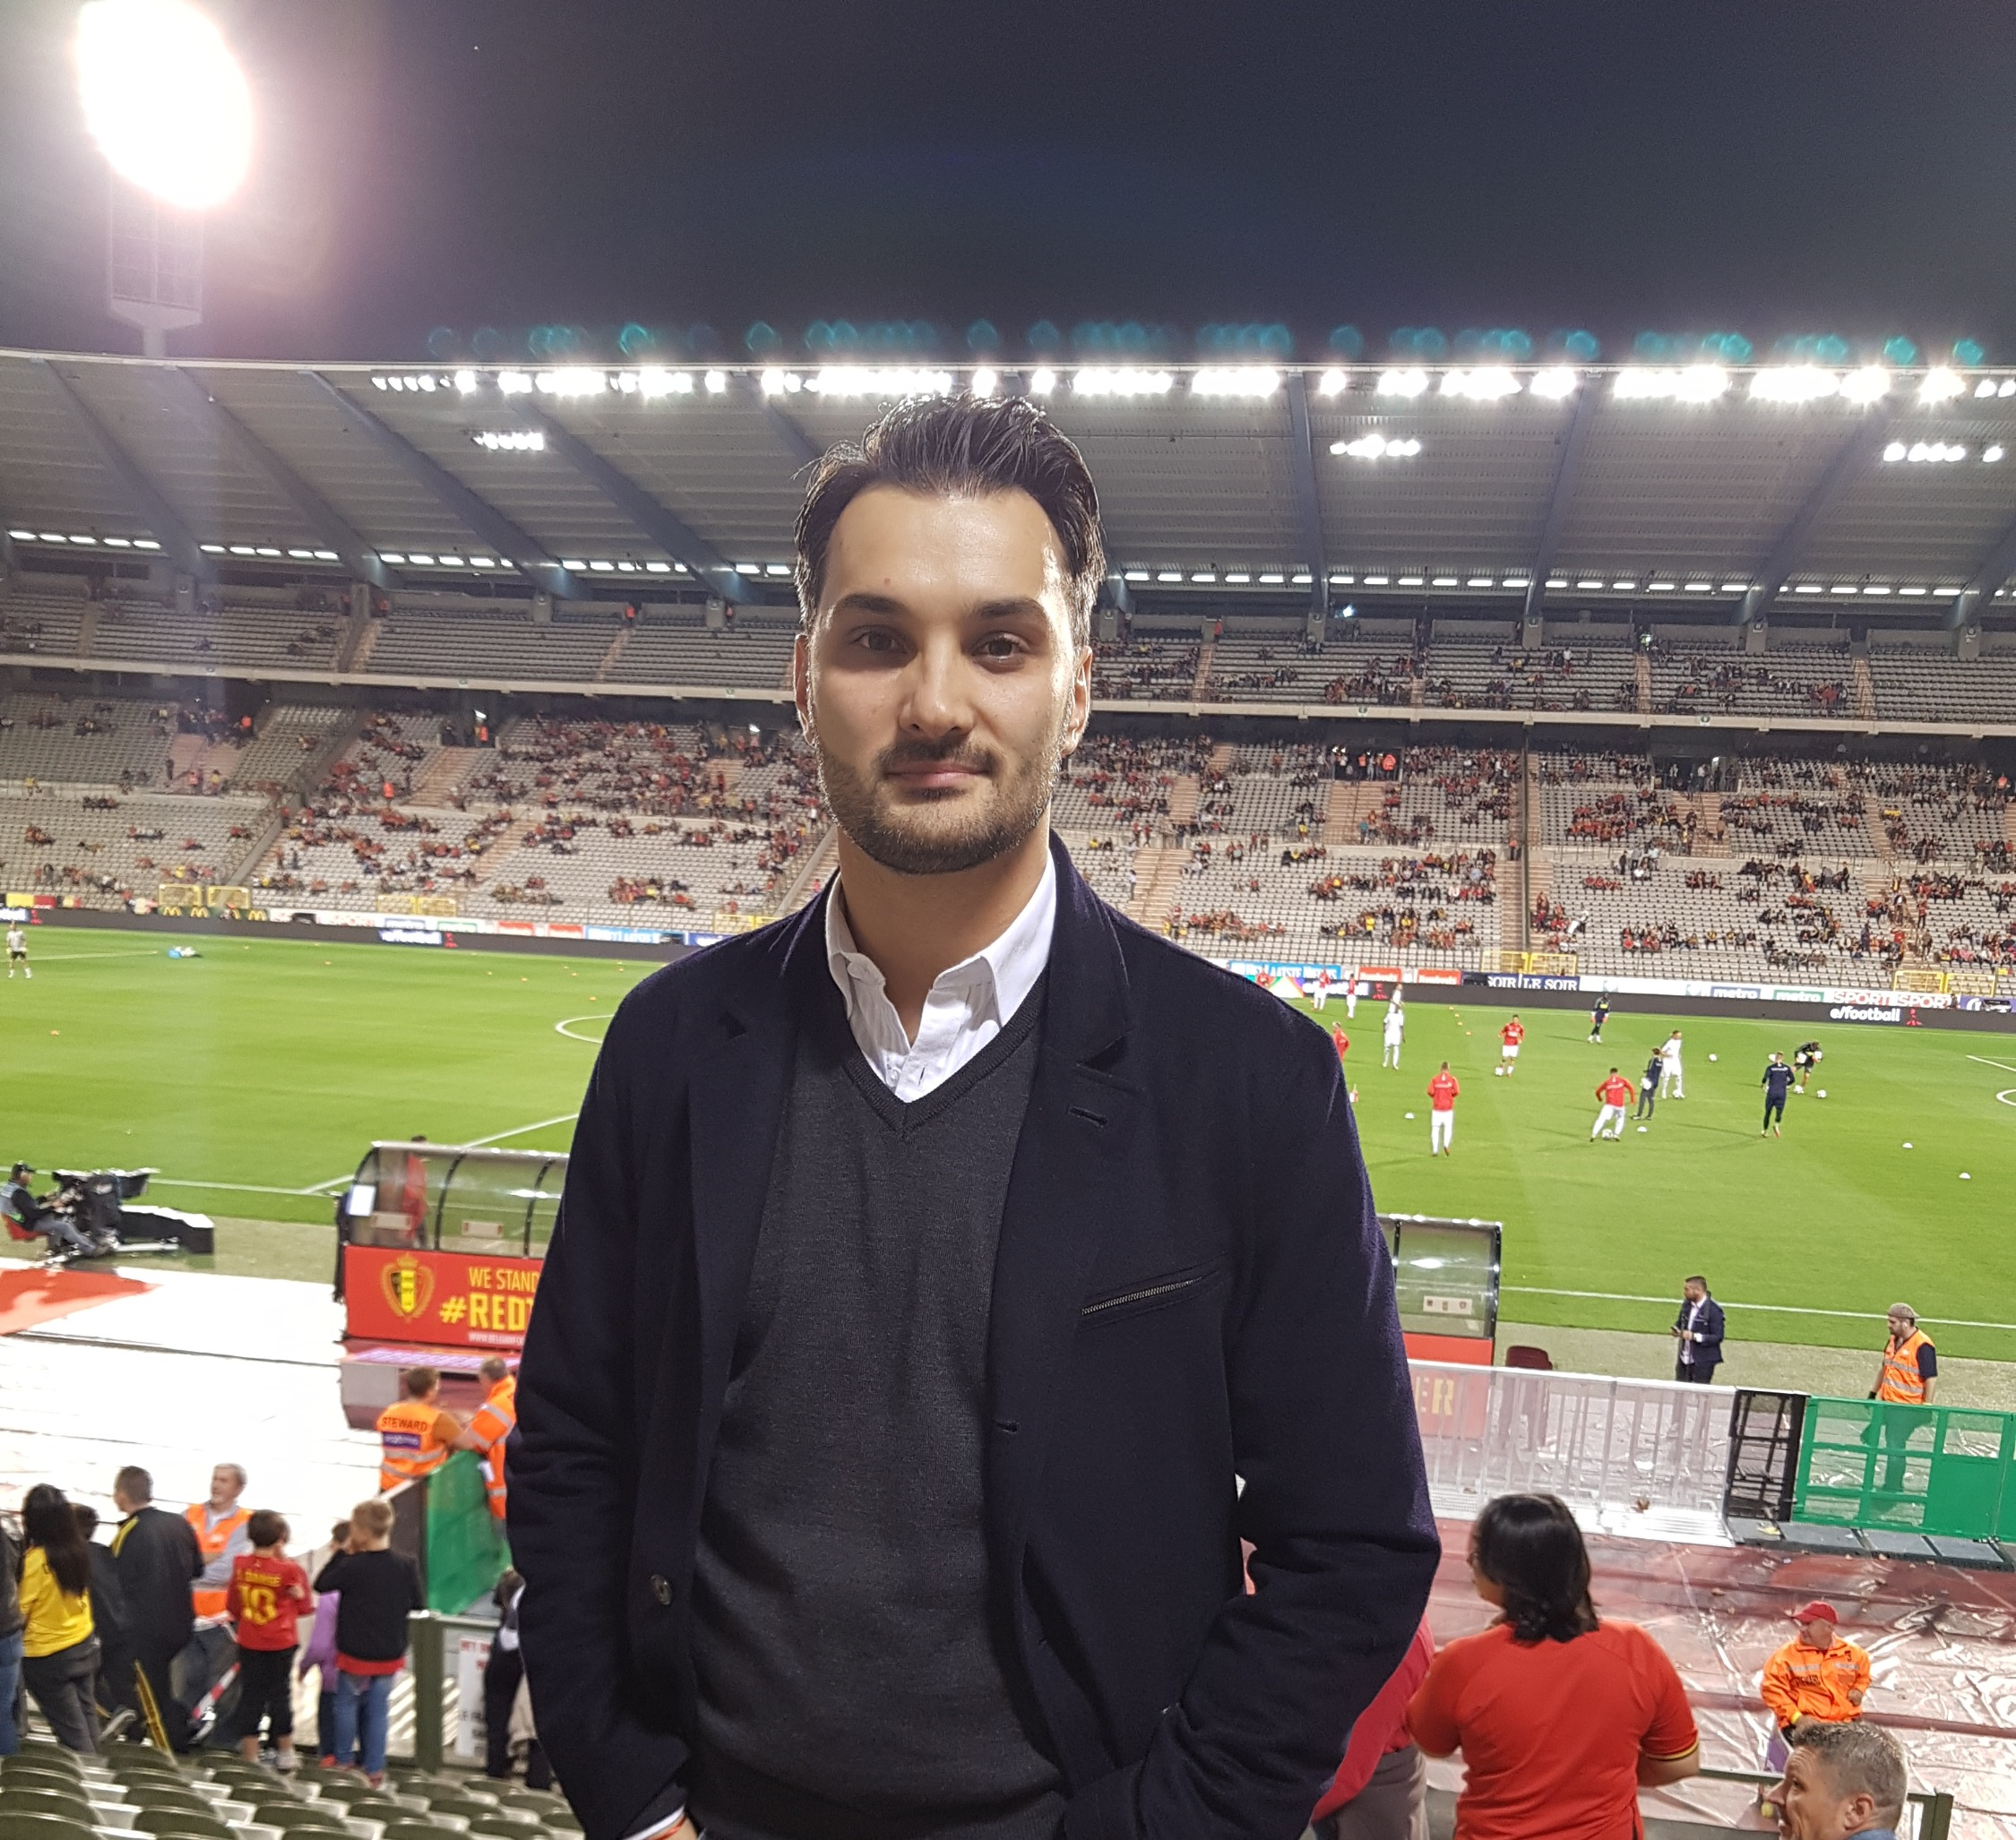 Attending Belgium vs Switzerland